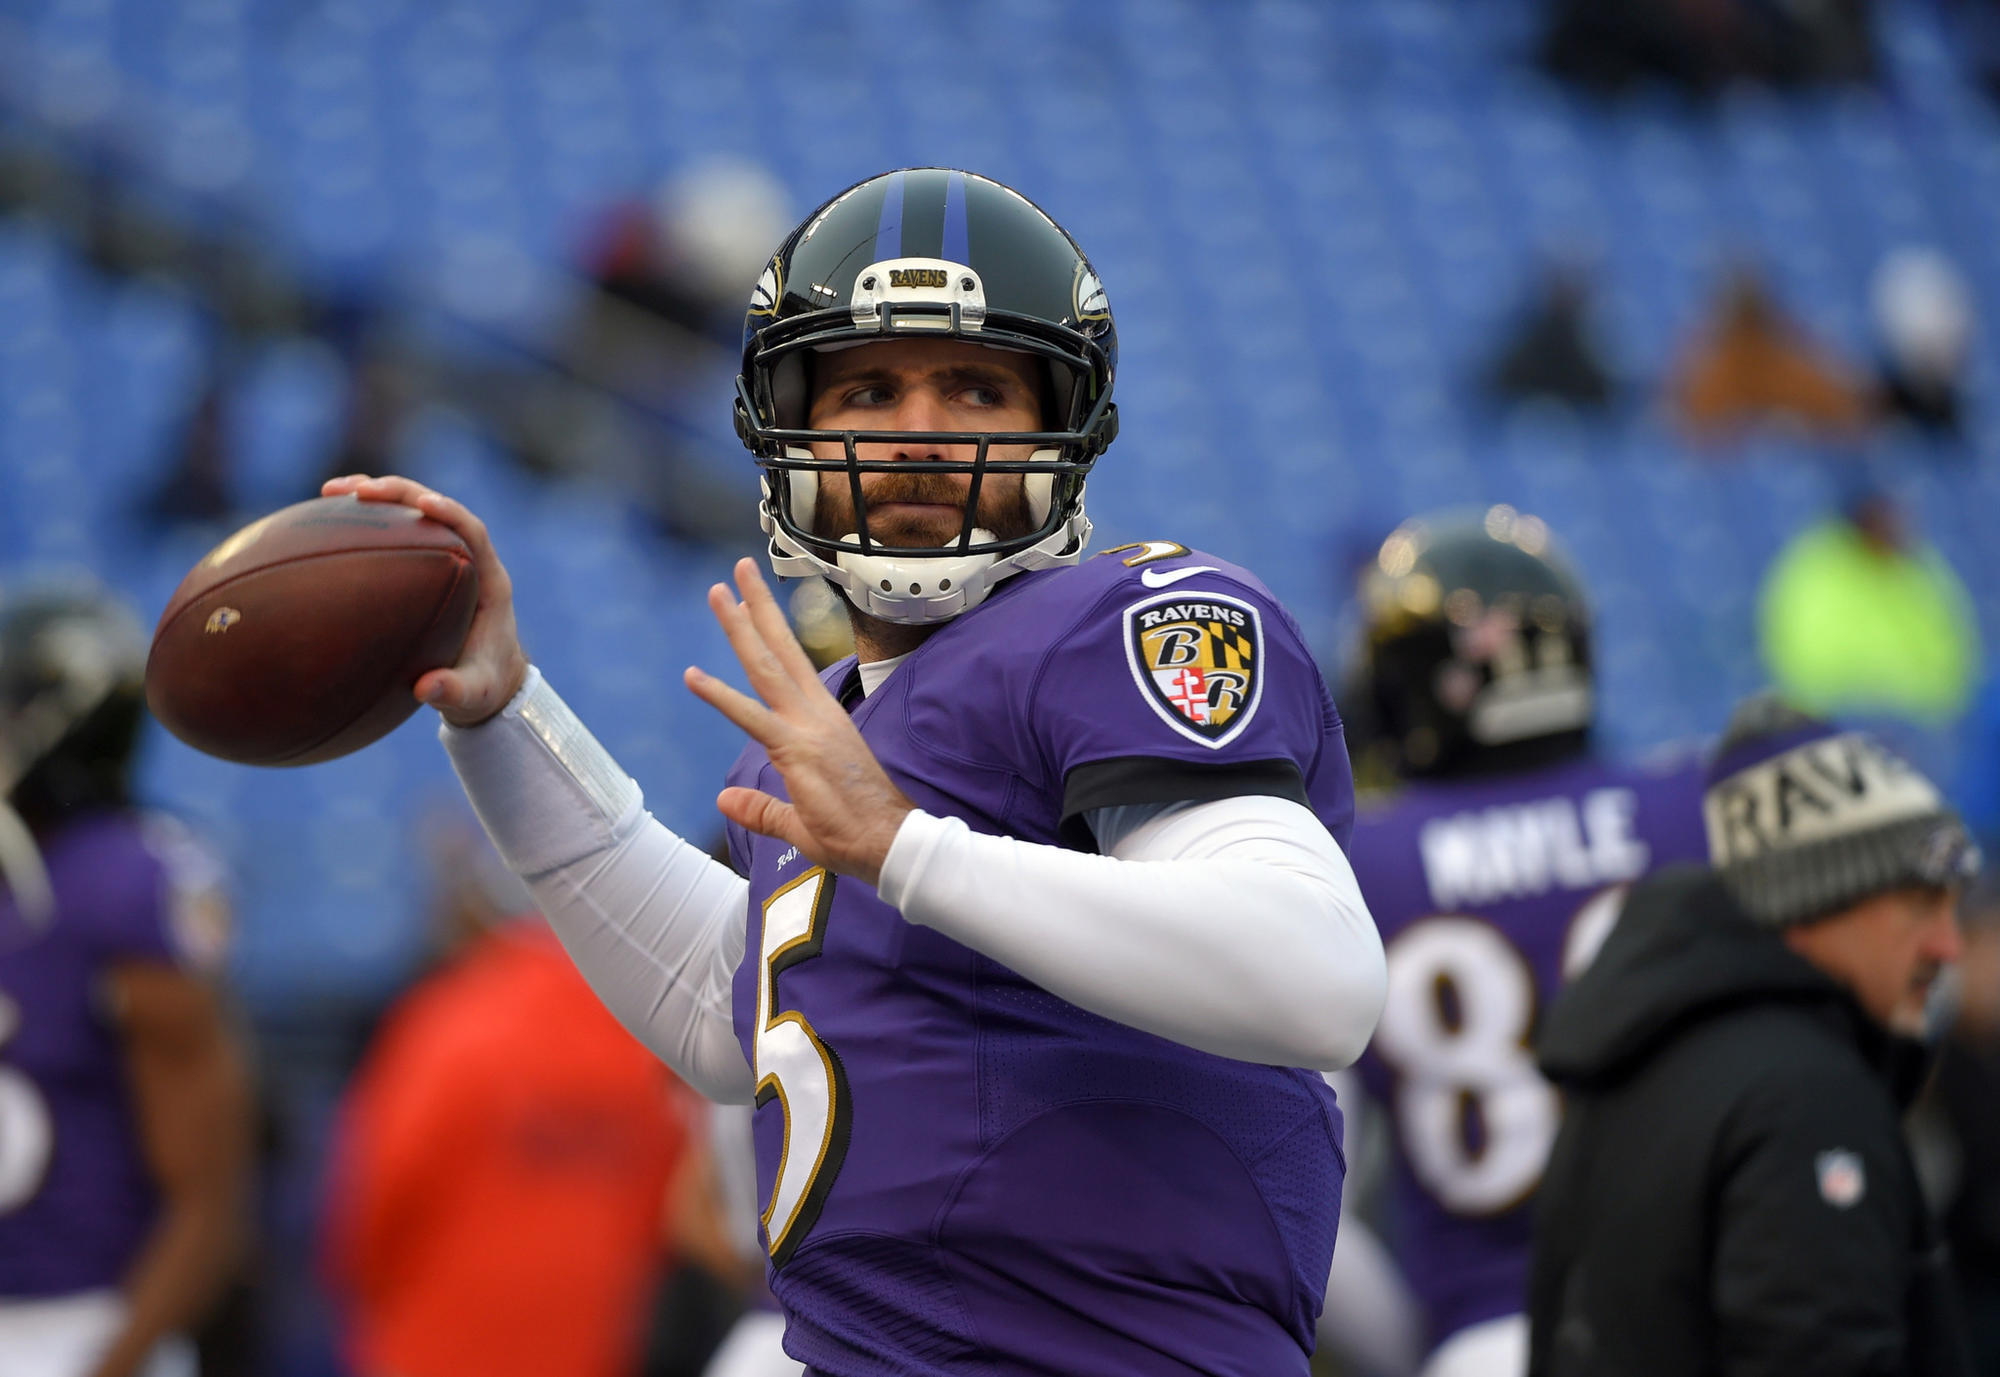 Bs-sp-ravens-nfl-draft-quarterbacks-0415